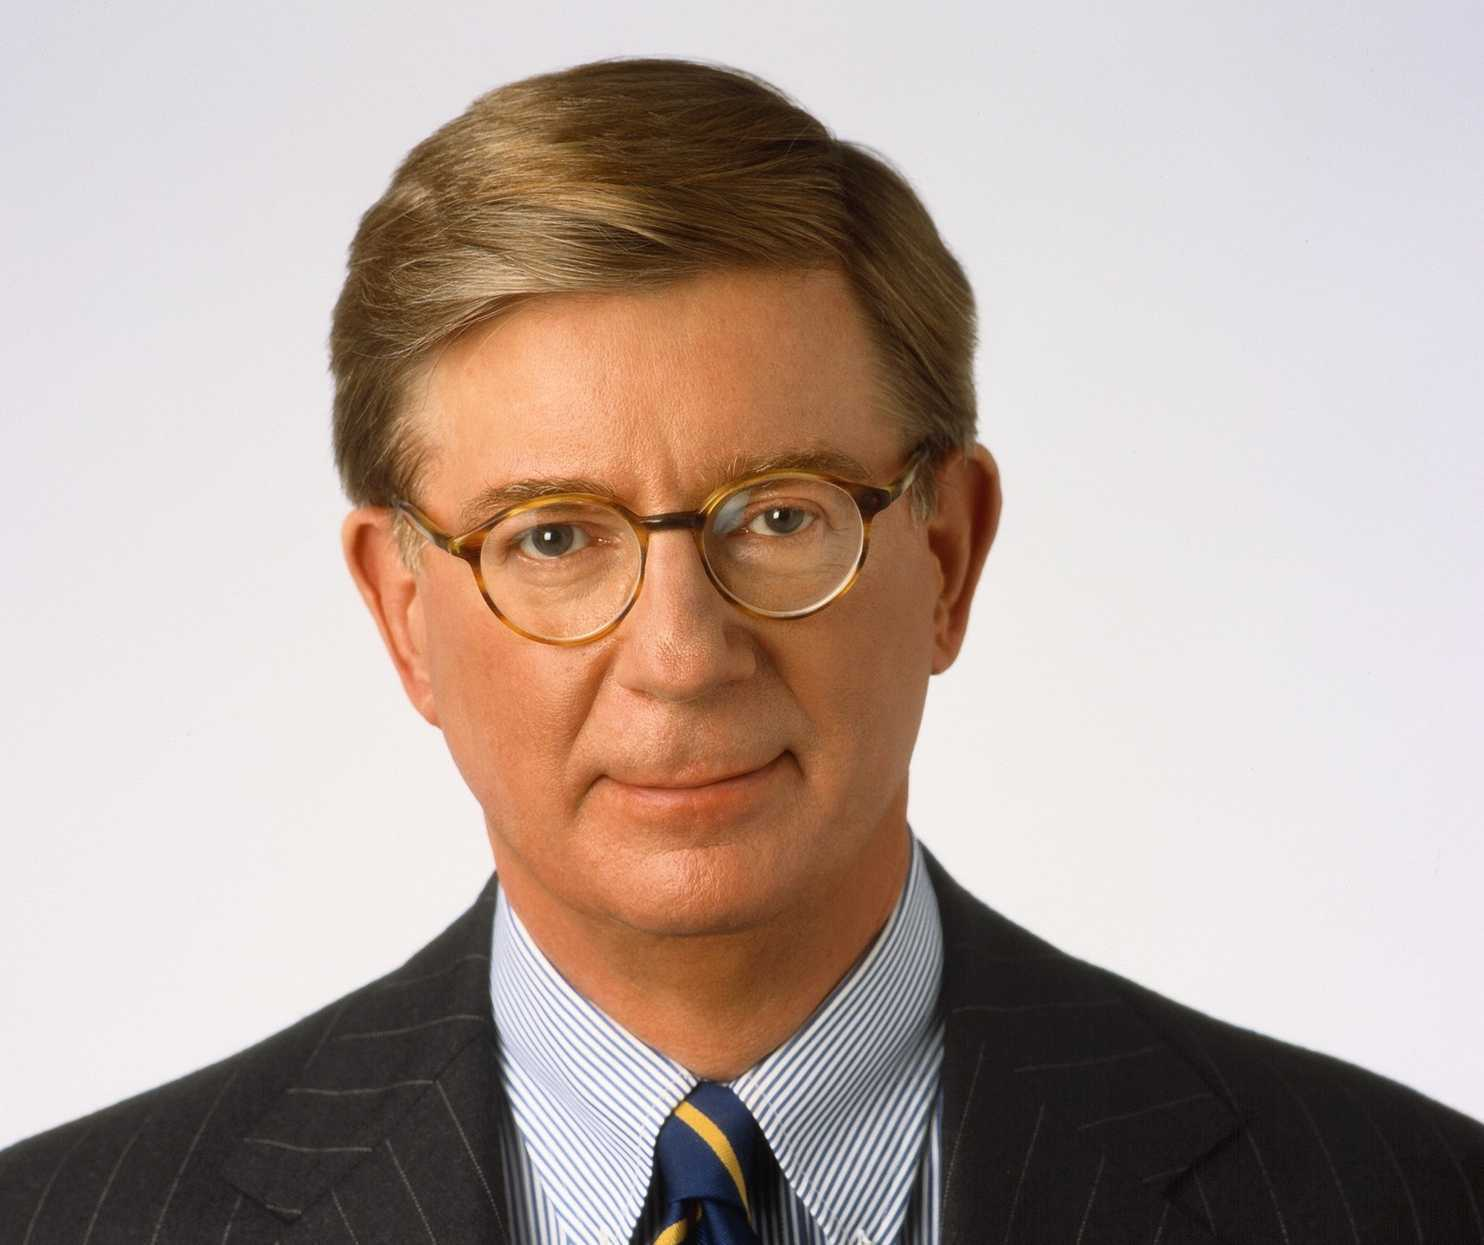 Conservative George Will:  Trump has a dangerous disability